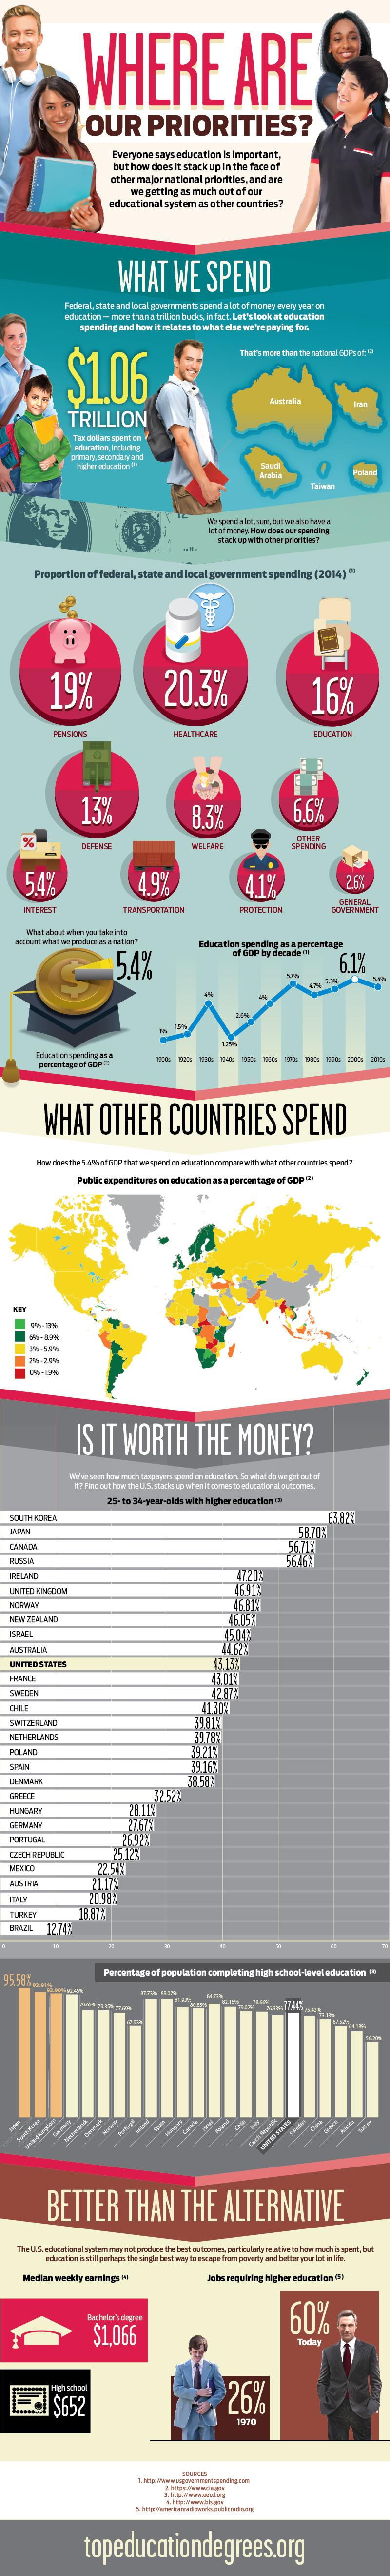 Education Spending Where Are Our Priorities